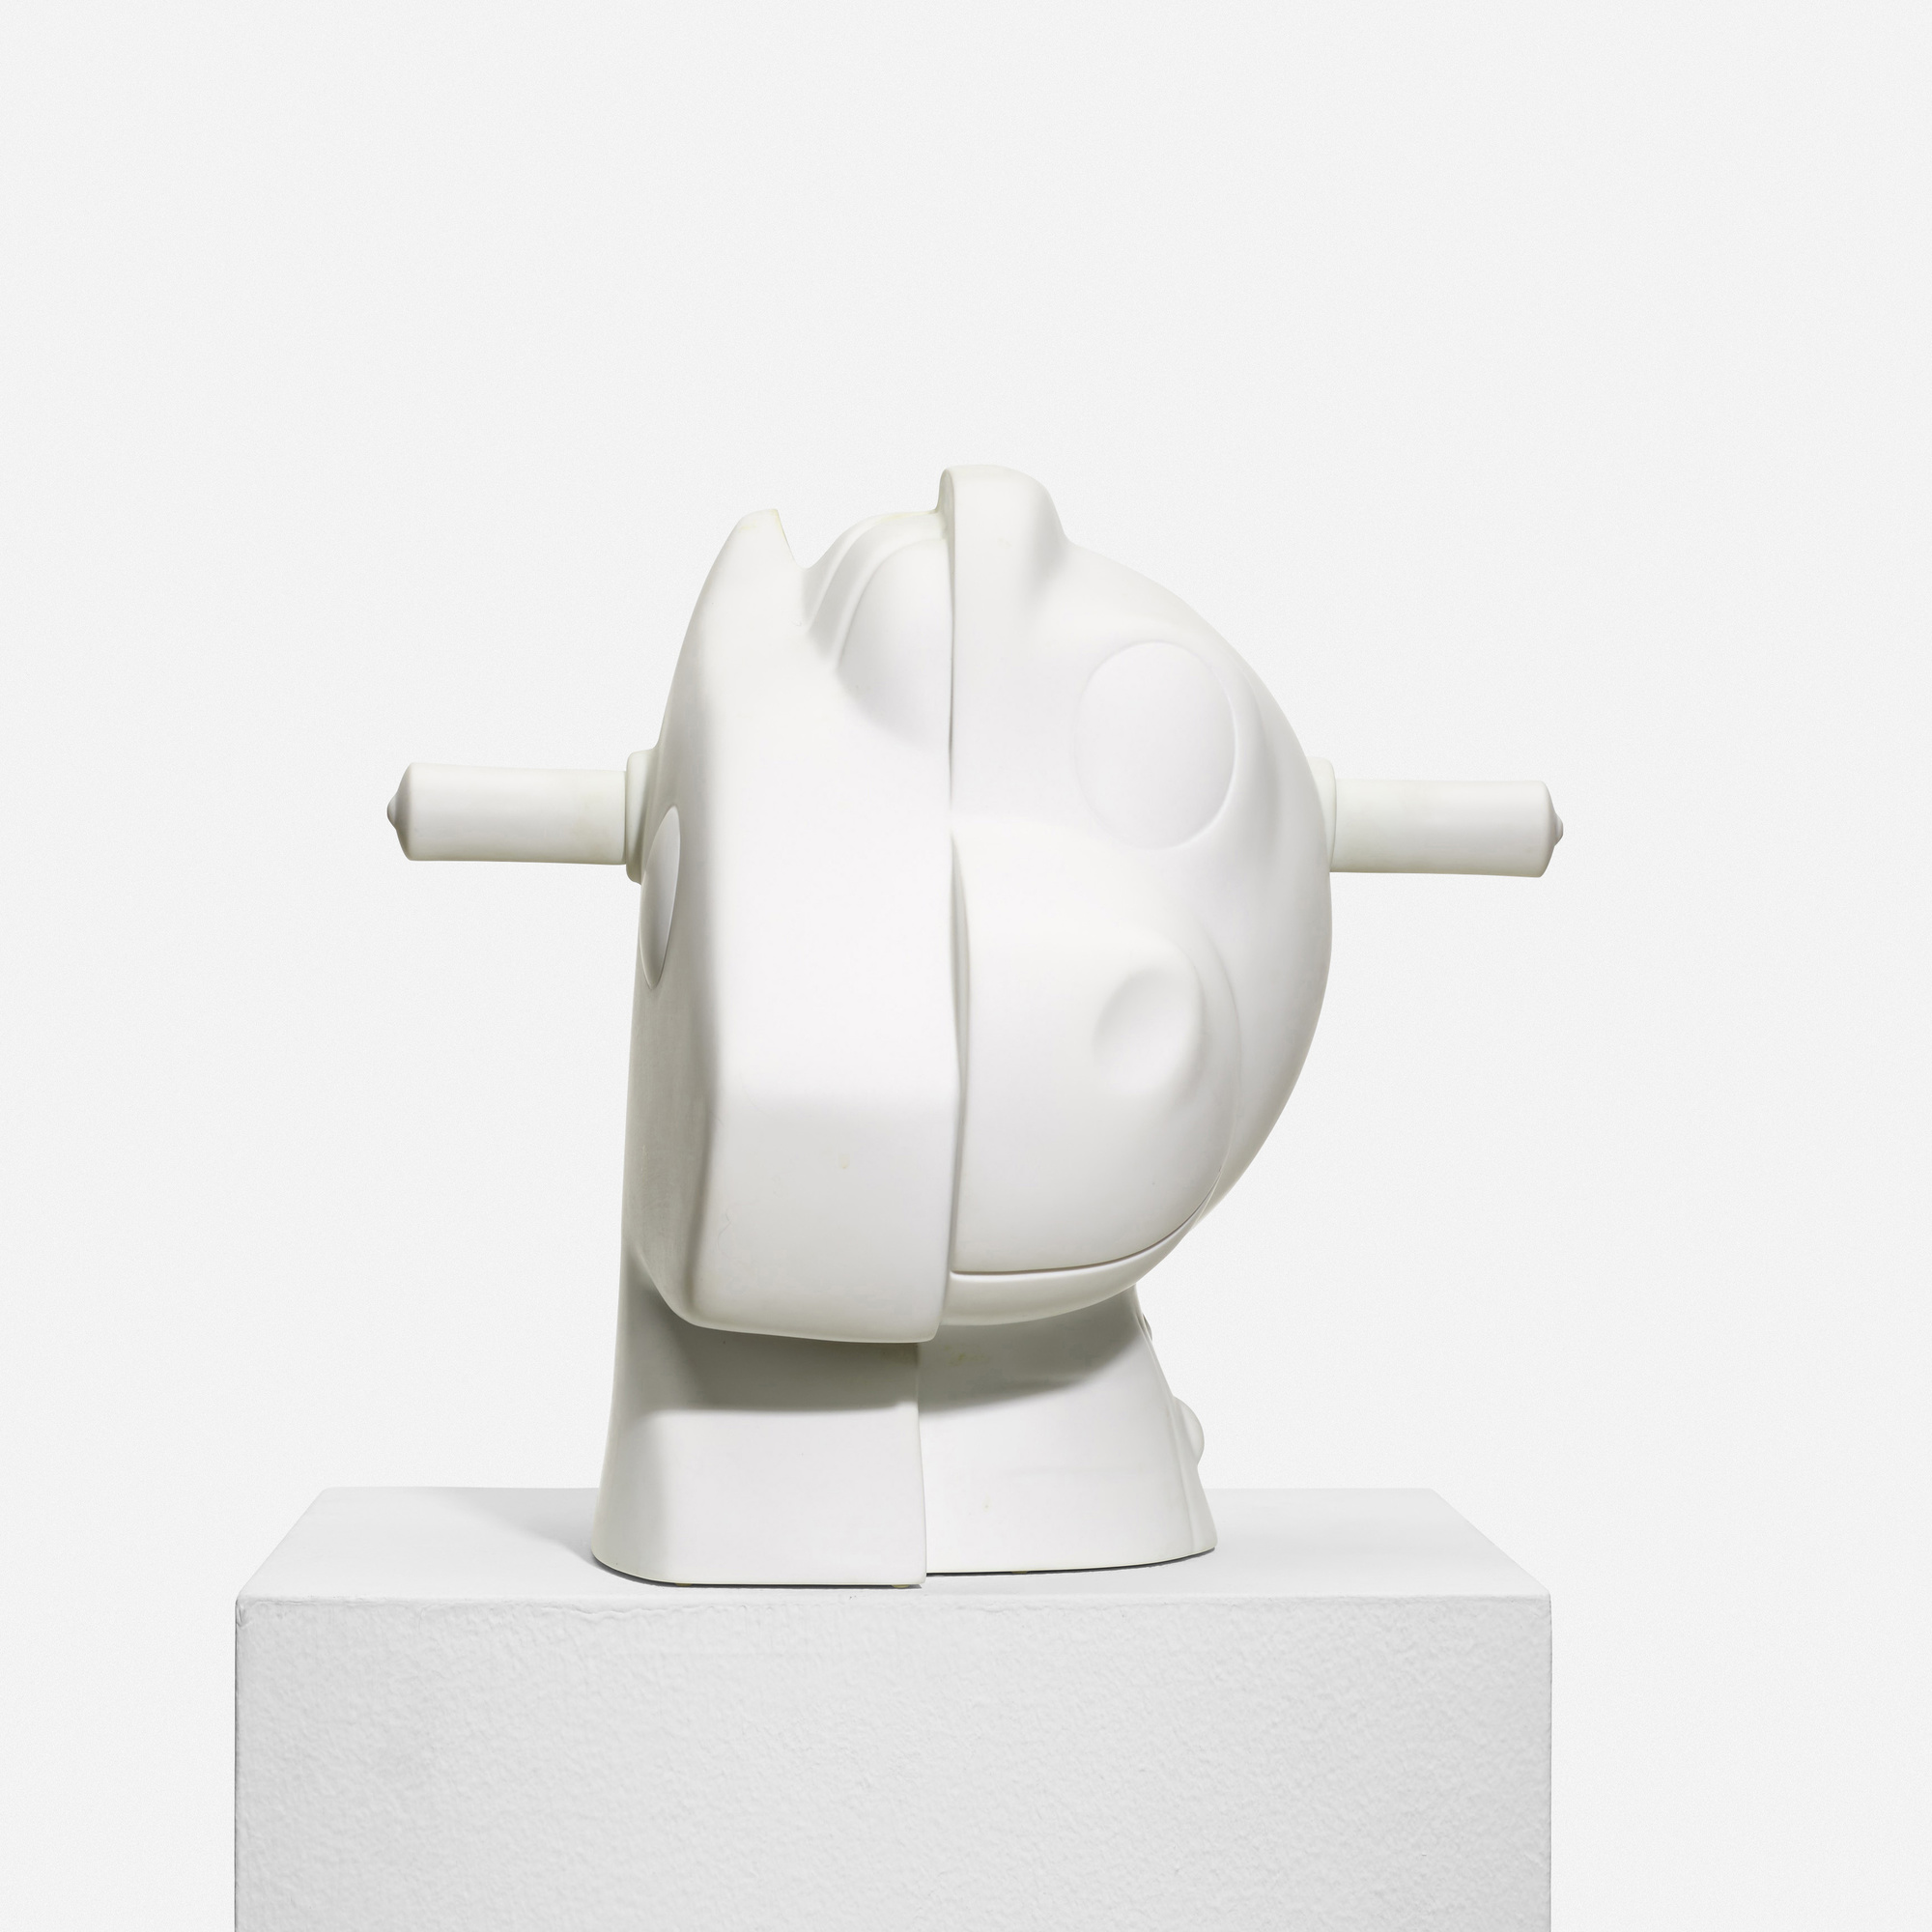 226: Jeff Koons / Split Rocker (vase) (2 of 3)